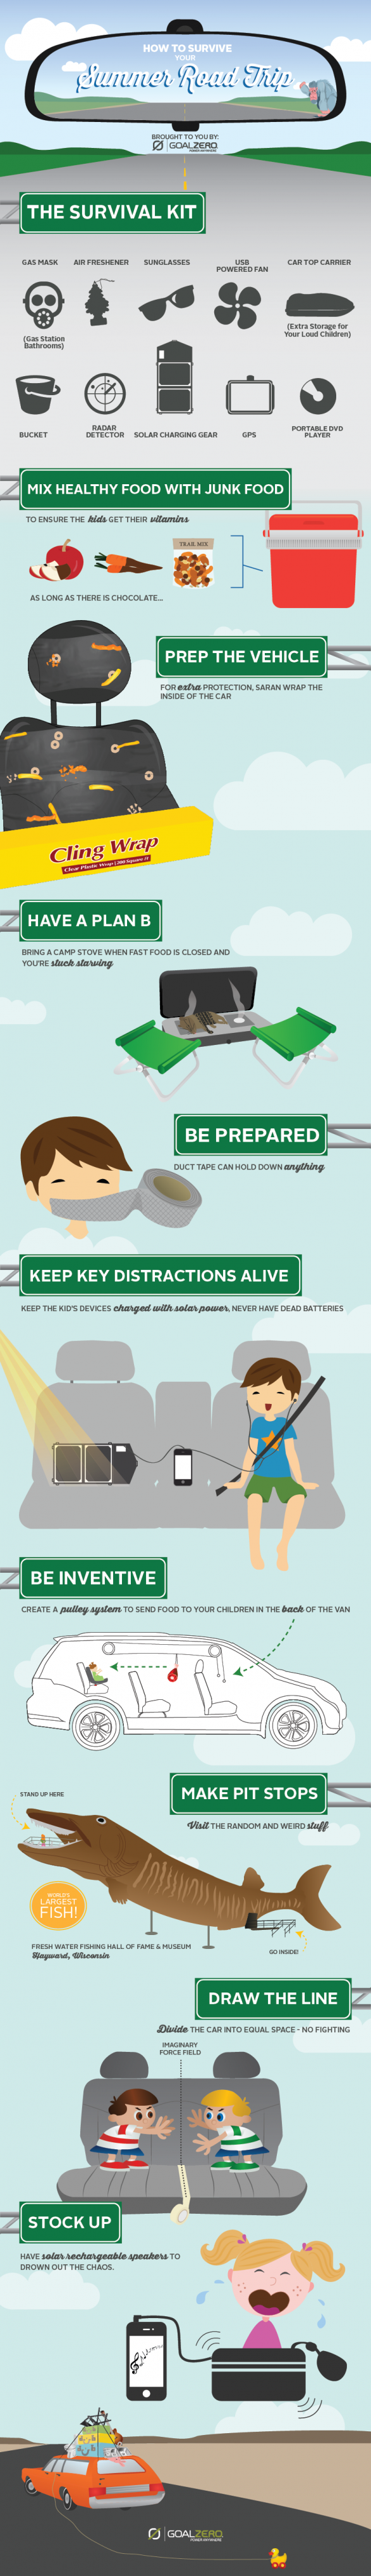 How to Survive Your Summer Road Trip